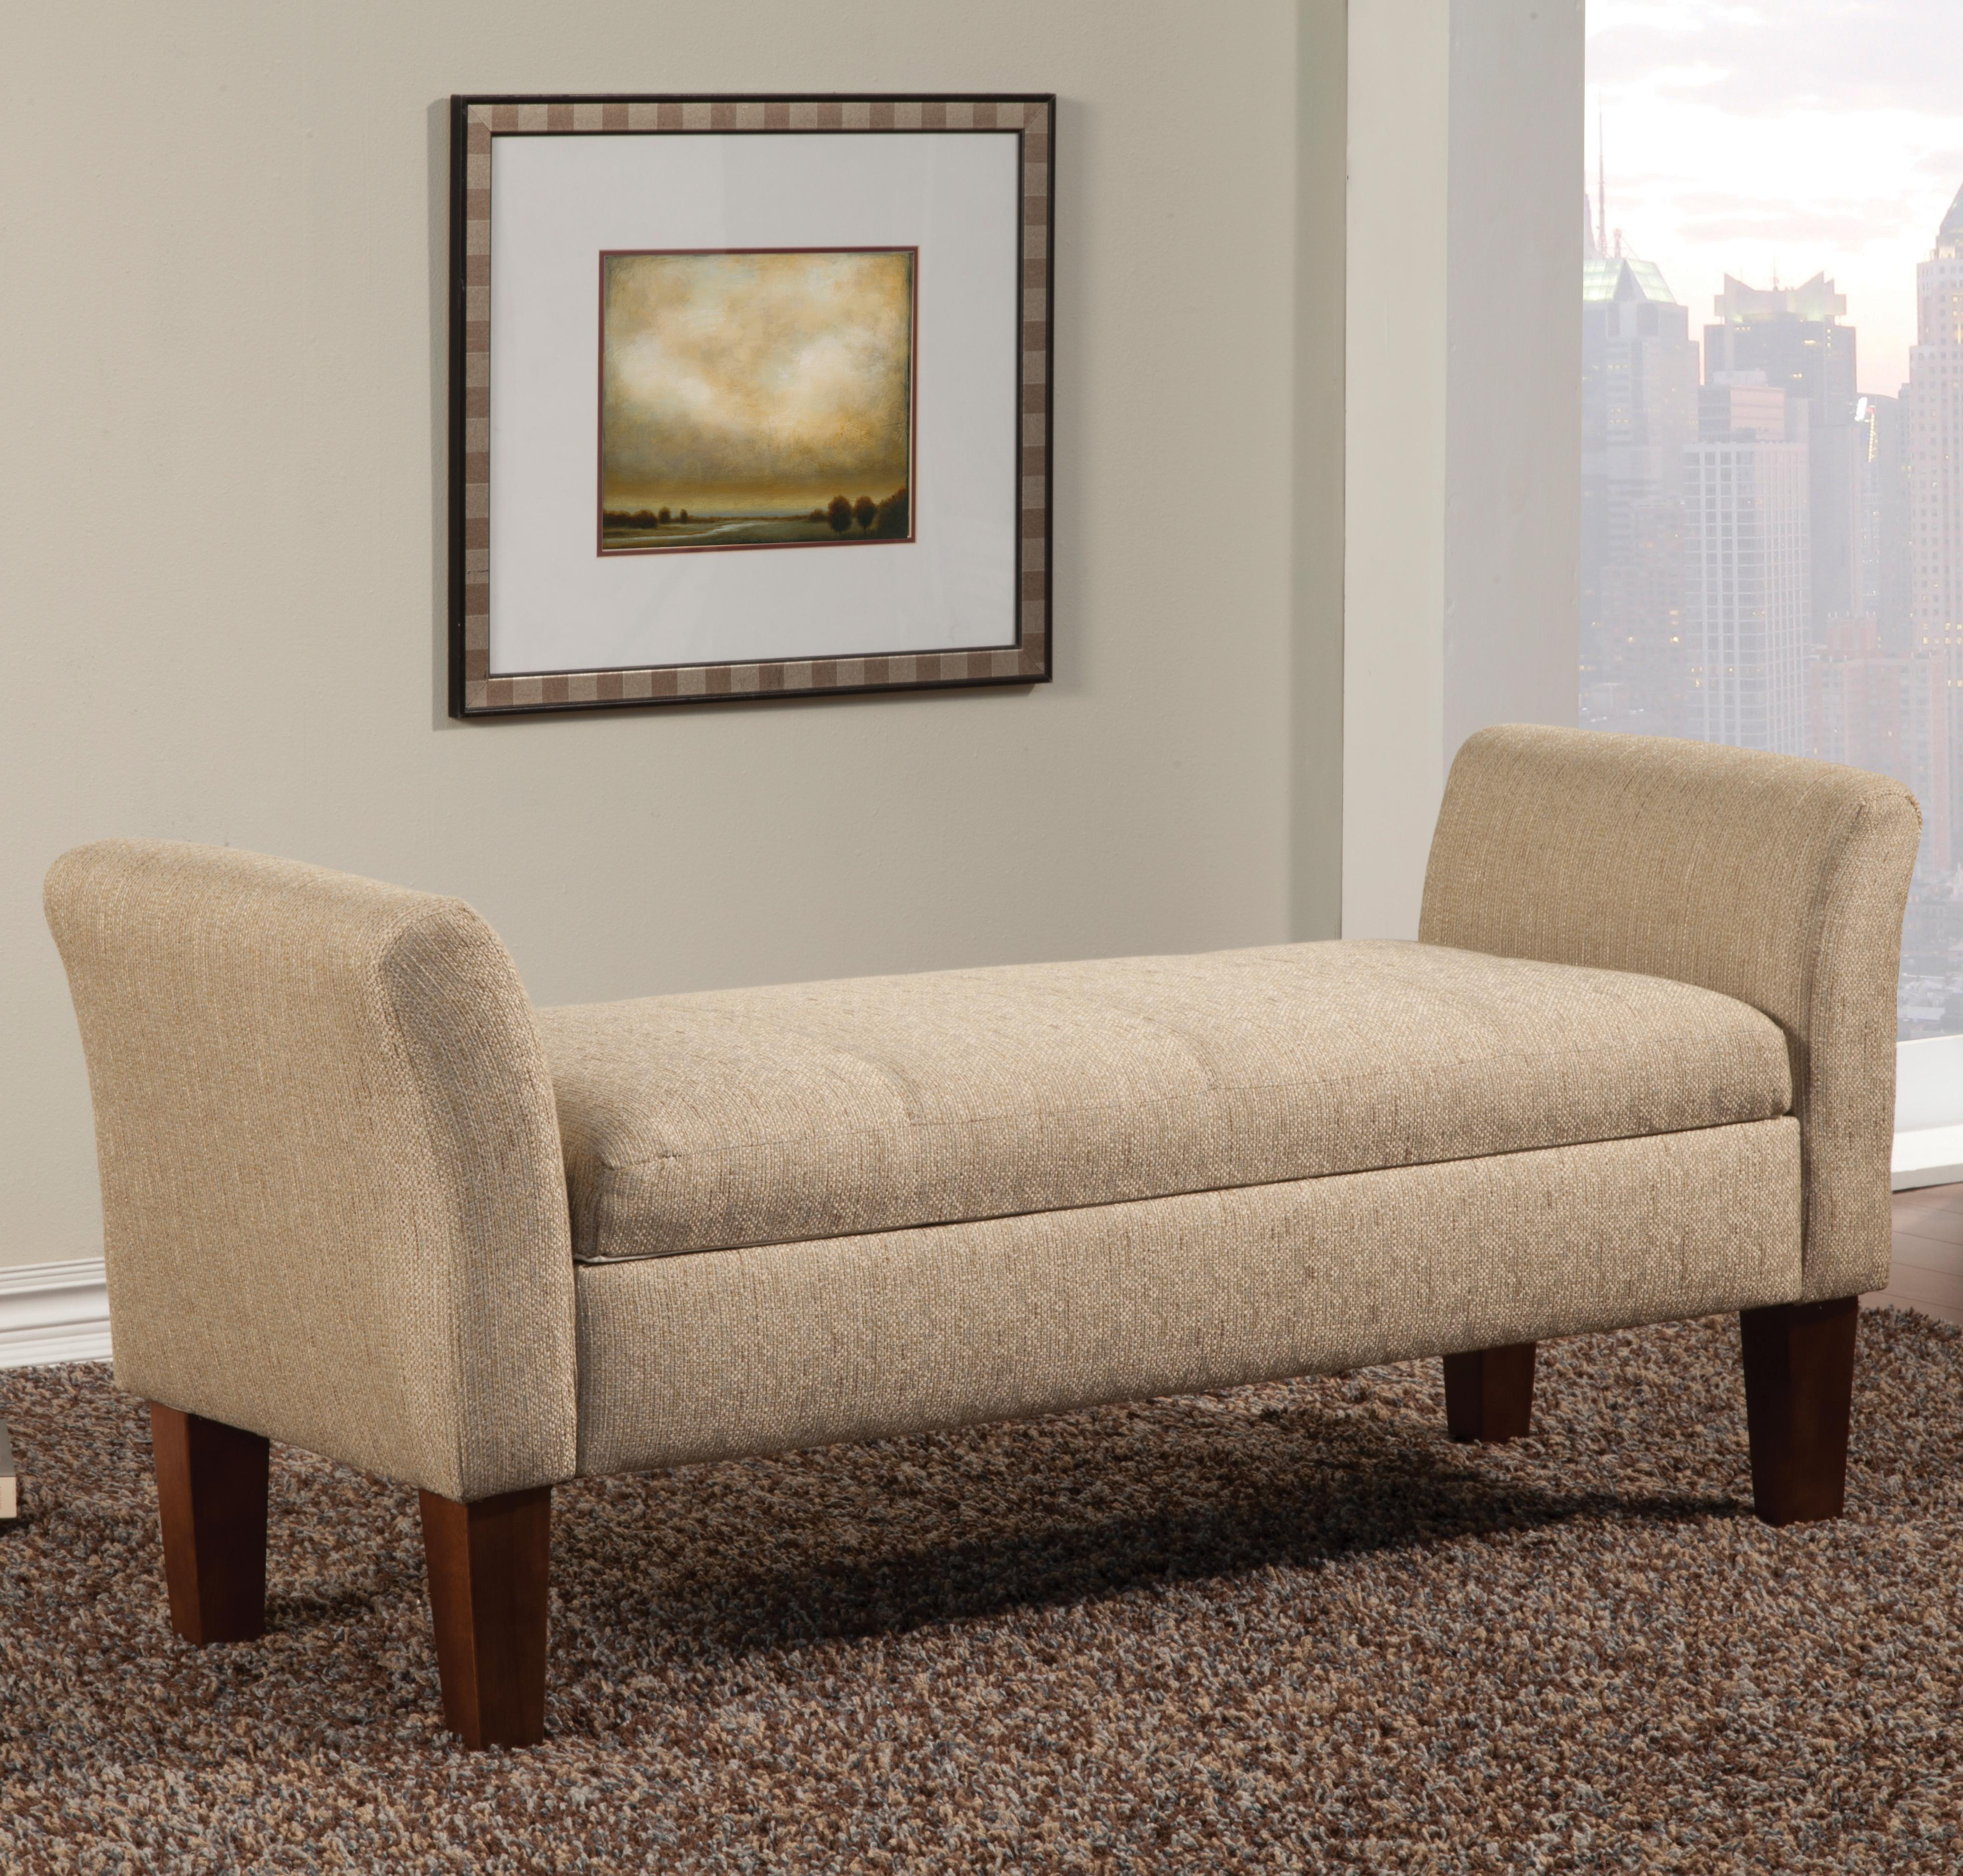 Coaster Benches Storage Bench in Tan Woven Fabric Knight Furniture & Ma